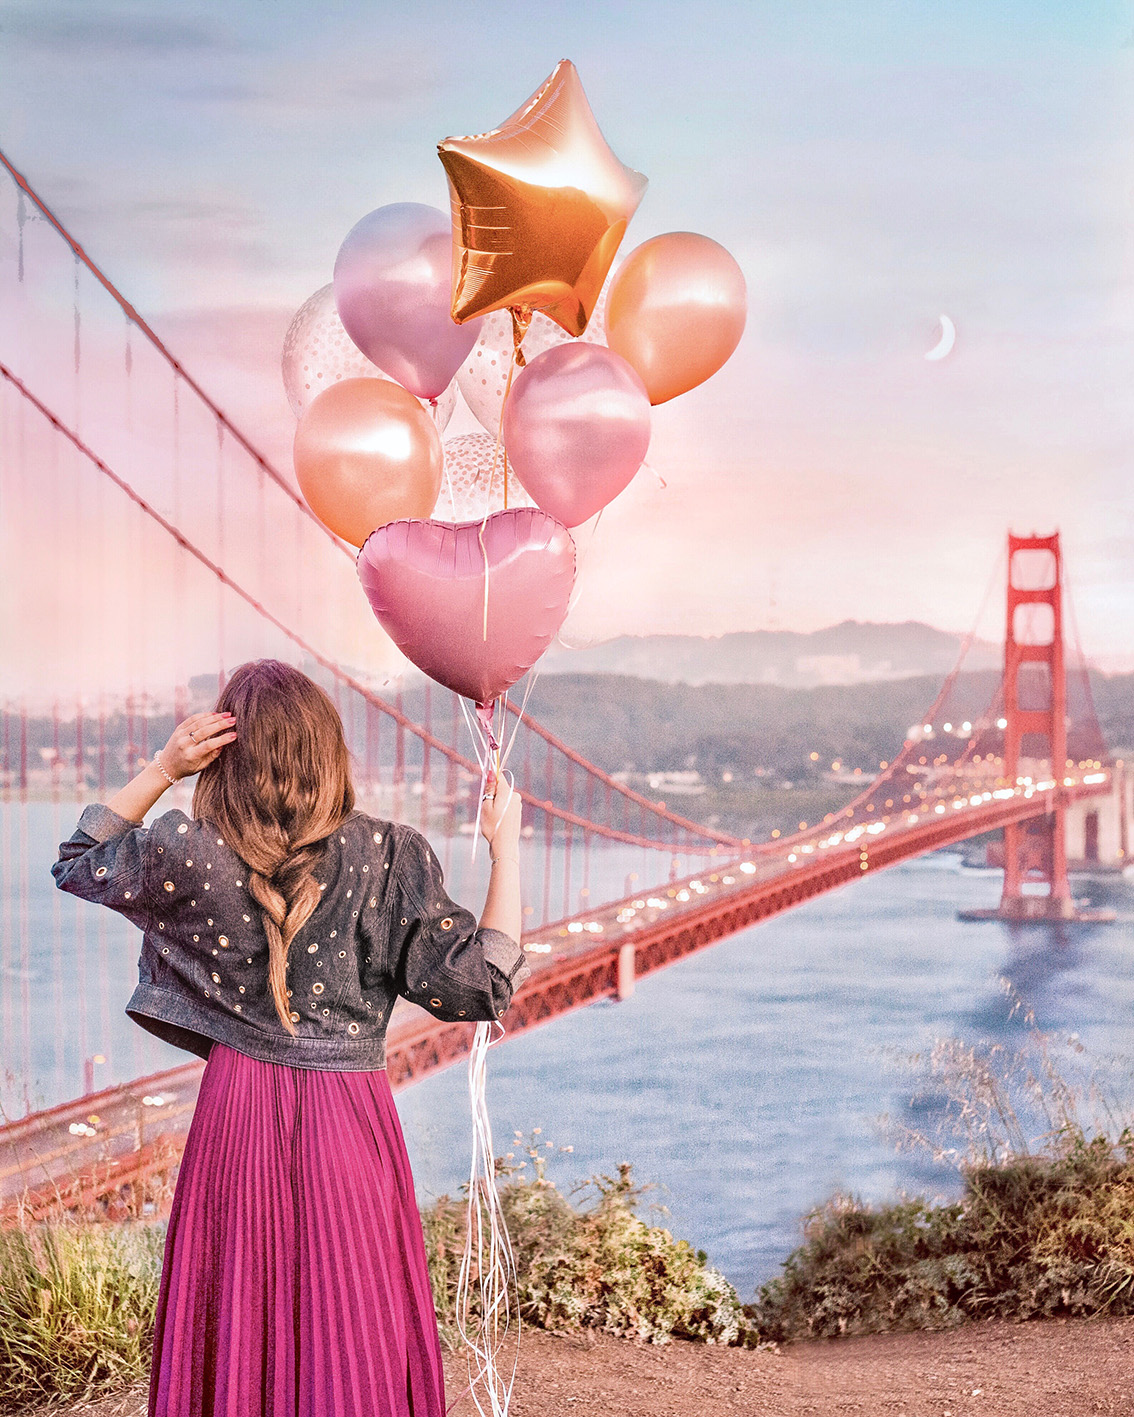 9 10 most instagrammable places in San Francisco you don't have to miss!